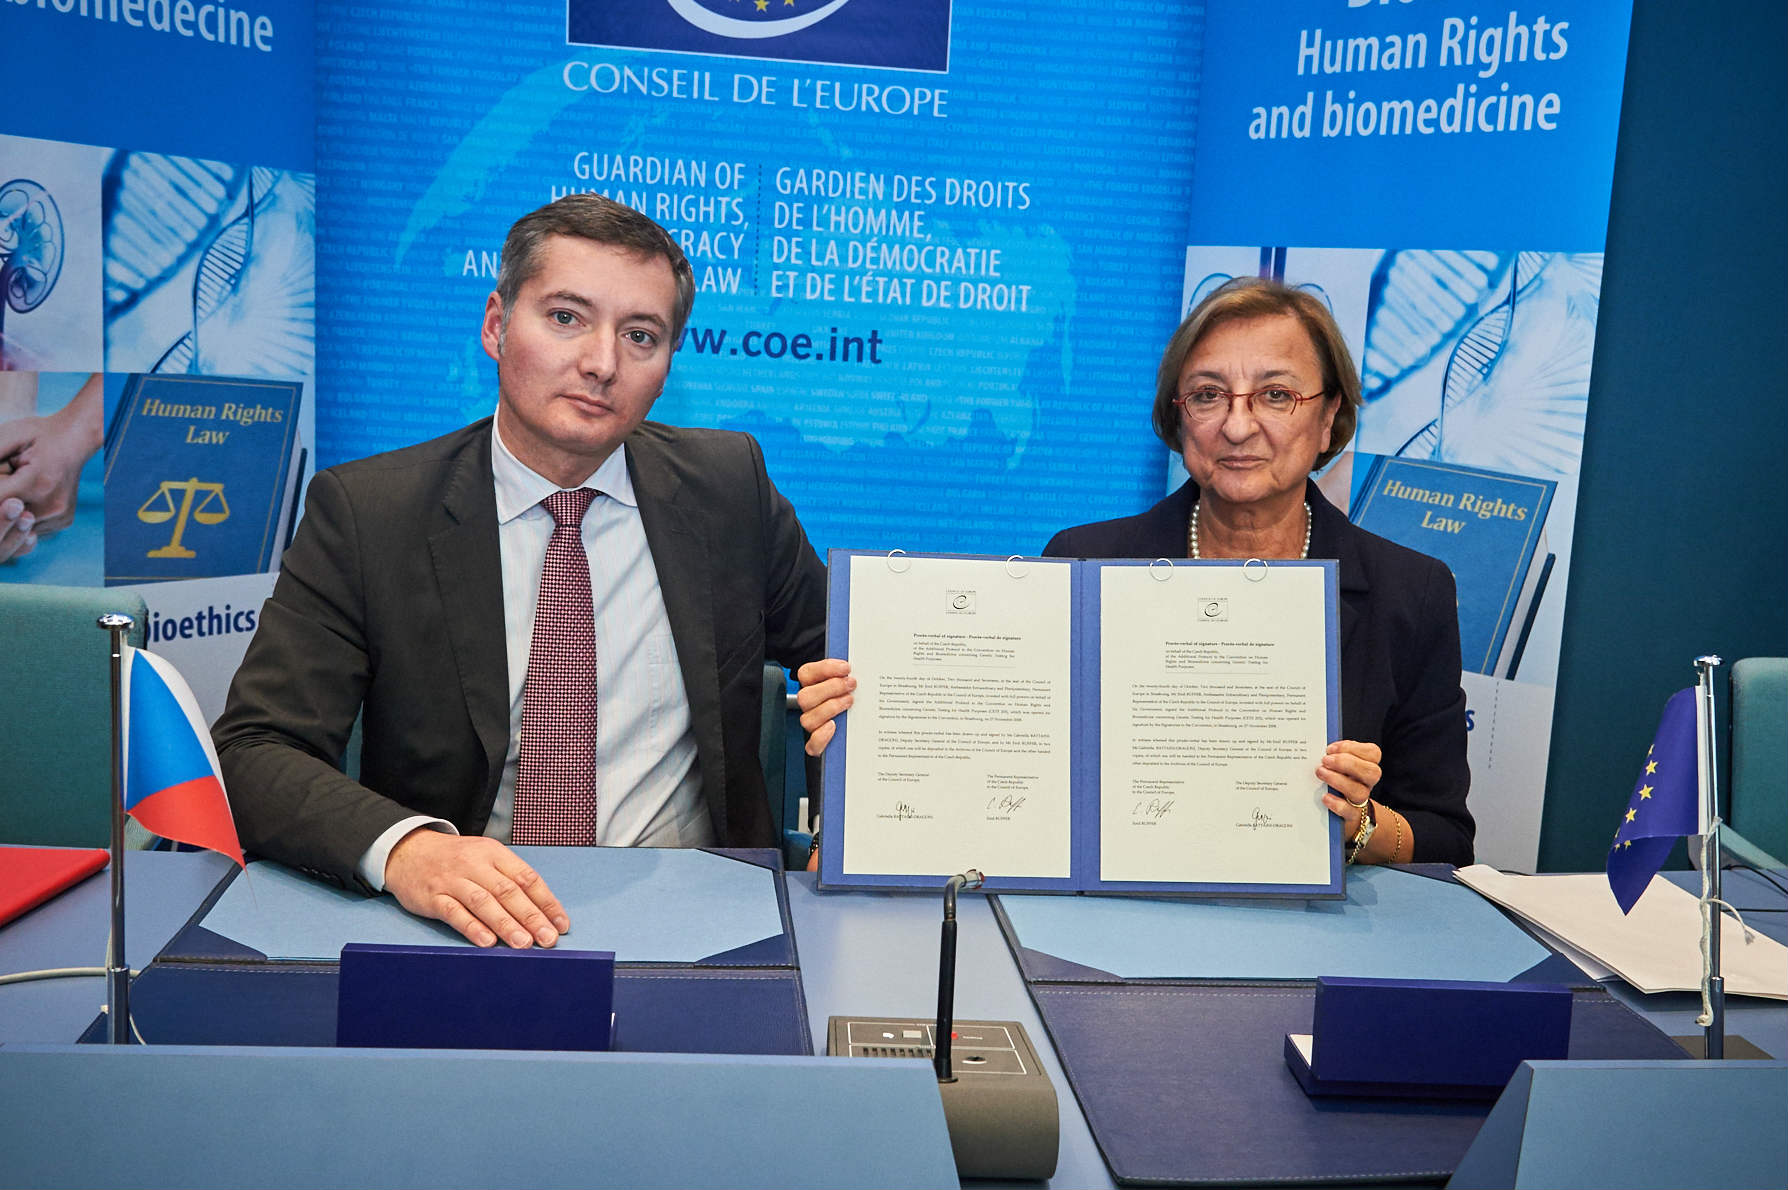 Czech Republic signs the Additional Protocol on Genetic Testing